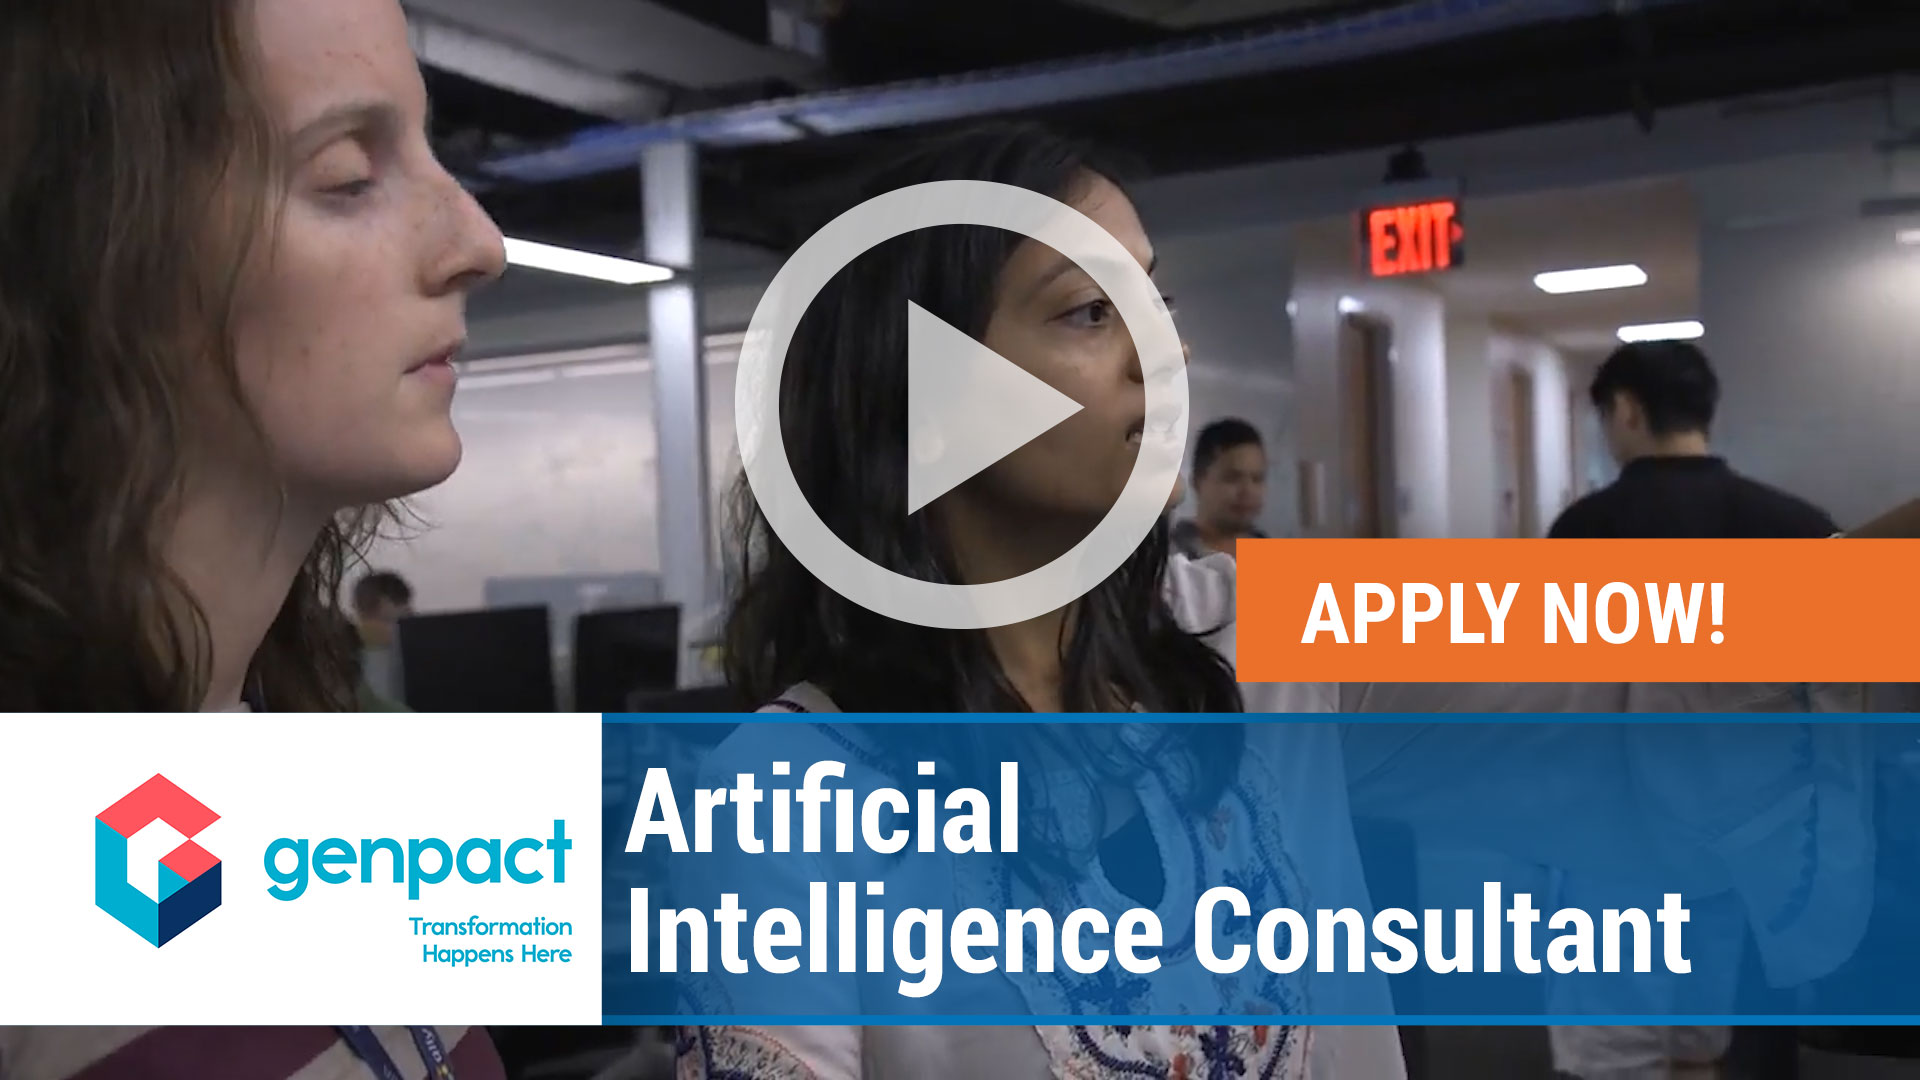 Watch our careers video for available job opening Artificial Intelligence Consultant in Dedham, MA, USA